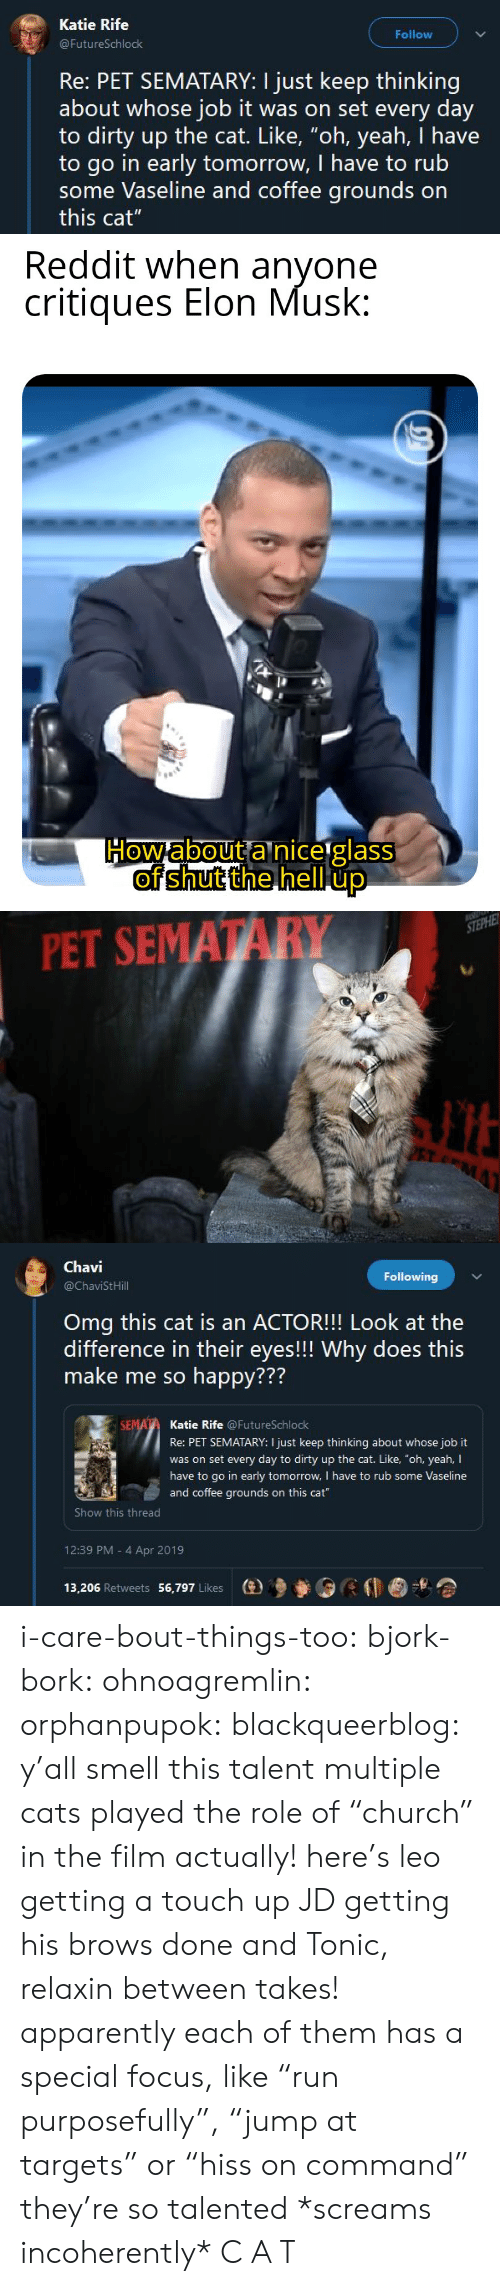 "Go In: Katie Rife  Follow  FutureSchlock  Re: PET SEMATARY: I just keep thinking  about whose job it was on set every day  to dirty up the cat. Like, ""oh, yeah, I have  to go in early tomorrow, I have to rub  some Vaseline and coffee grounds on  this cat""   PET SEMATARY   Chavi  @ChaviStHill  Following  Omg this cat is an ACTOR!!! Look at the  difference in their eyes!!! Why does this  make me so happy???  772  Katie Rife @FutureSchlock  Re: PET SEMATARY: I just keep thinking about whose job it  was on set every day to dirty up the cat. Like, ""oh, yeah, I  have to go in early tomorrow, I have to rub some Vaseline  and coffee grounds on this cat  Show this thread  12:39 PM - 4 Apr 2019  13,206 Retweets 56,797 Likes  (e)乡參0 i-care-bout-things-too:  bjork-bork:  ohnoagremlin:  orphanpupok:  blackqueerblog: y'all smell this talent  multiple cats played the role of ""church"" in the film actually! here's leo getting a touch up JD getting his brows done and Tonic, relaxin between takes!   apparently each of them has a special focus, like ""run purposefully"", ""jump at targets"" or ""hiss on command"" they're so talented     *screams incoherently* C A T"